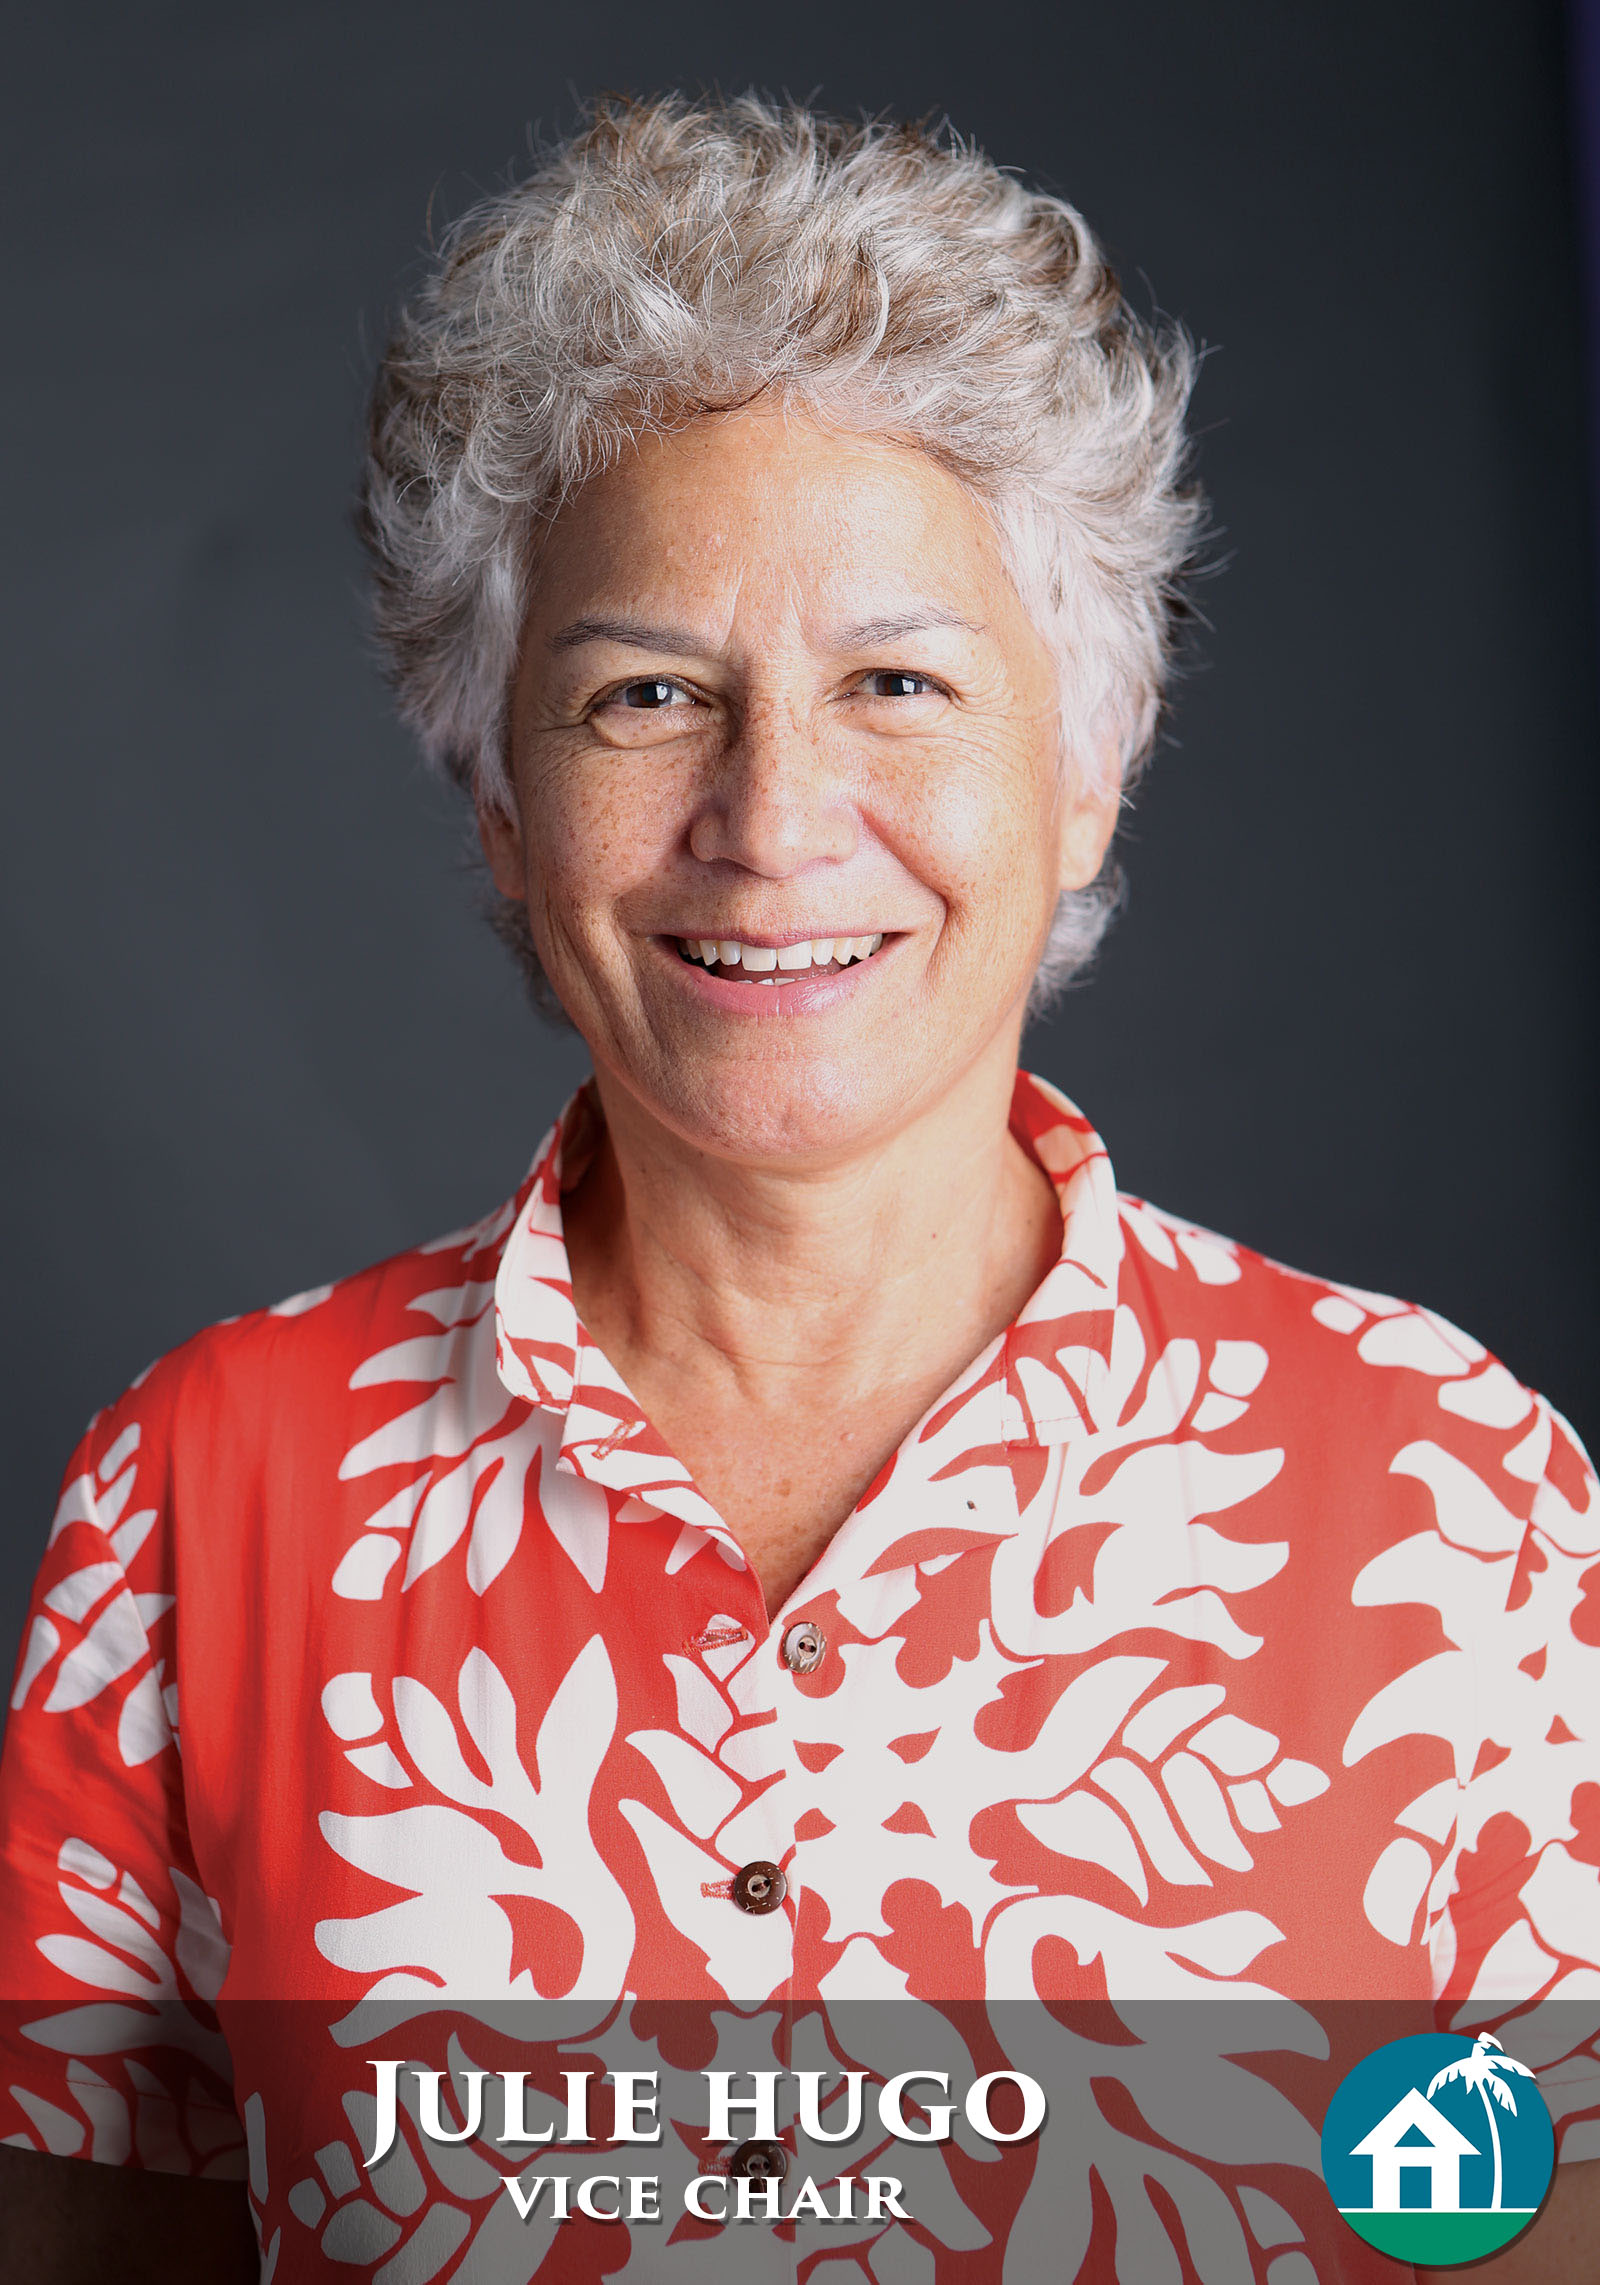 Board of Director and Vice Chair, Julie Hugo, on behalf of Hawaii Information Service